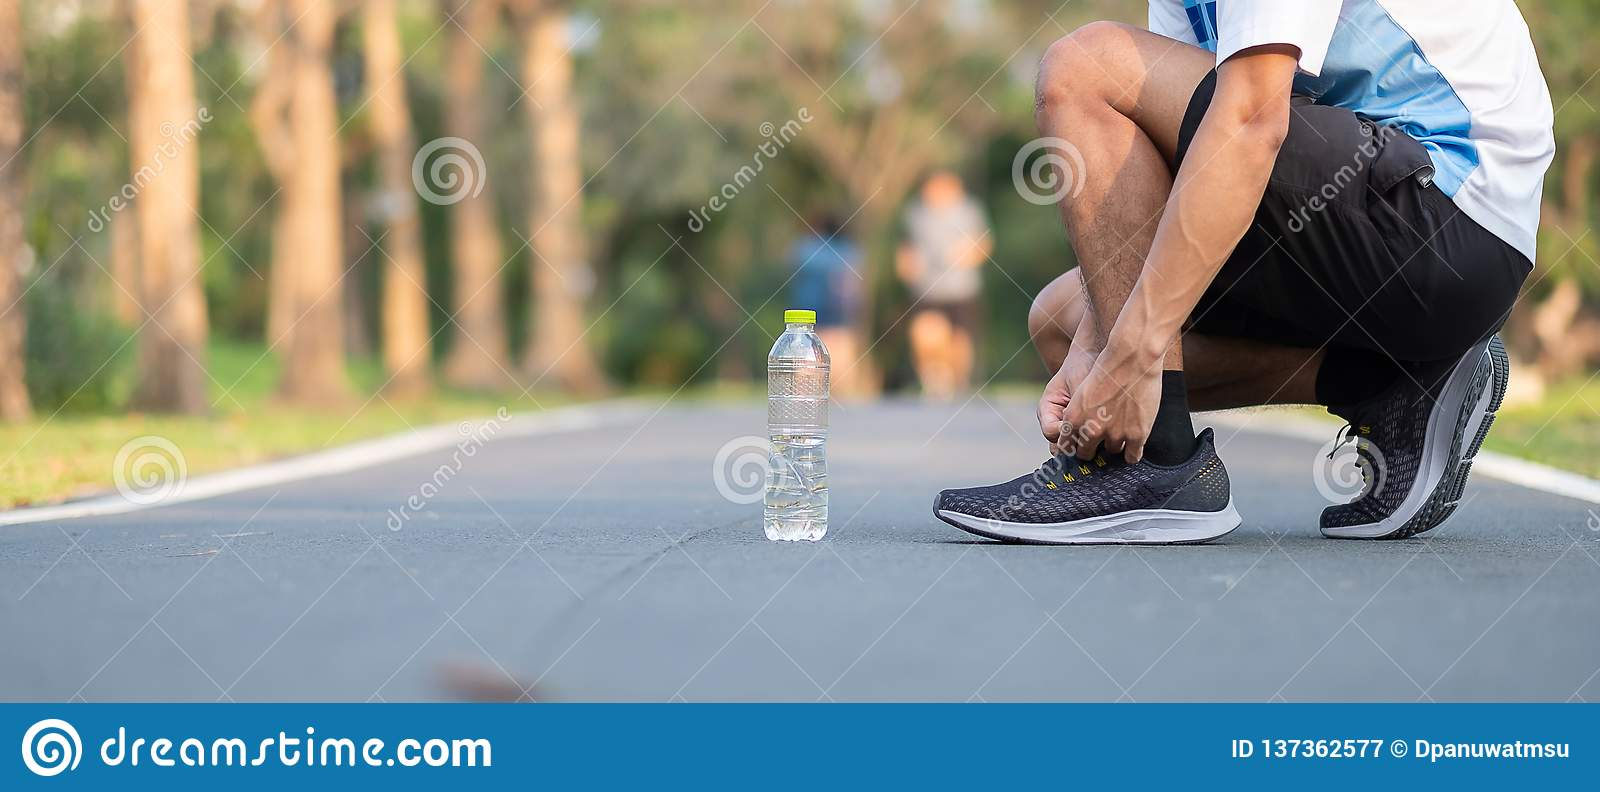 Young athlete man tying running shoes in the park outdoor. male runner ready for jogging on the road outside. asian Fitness